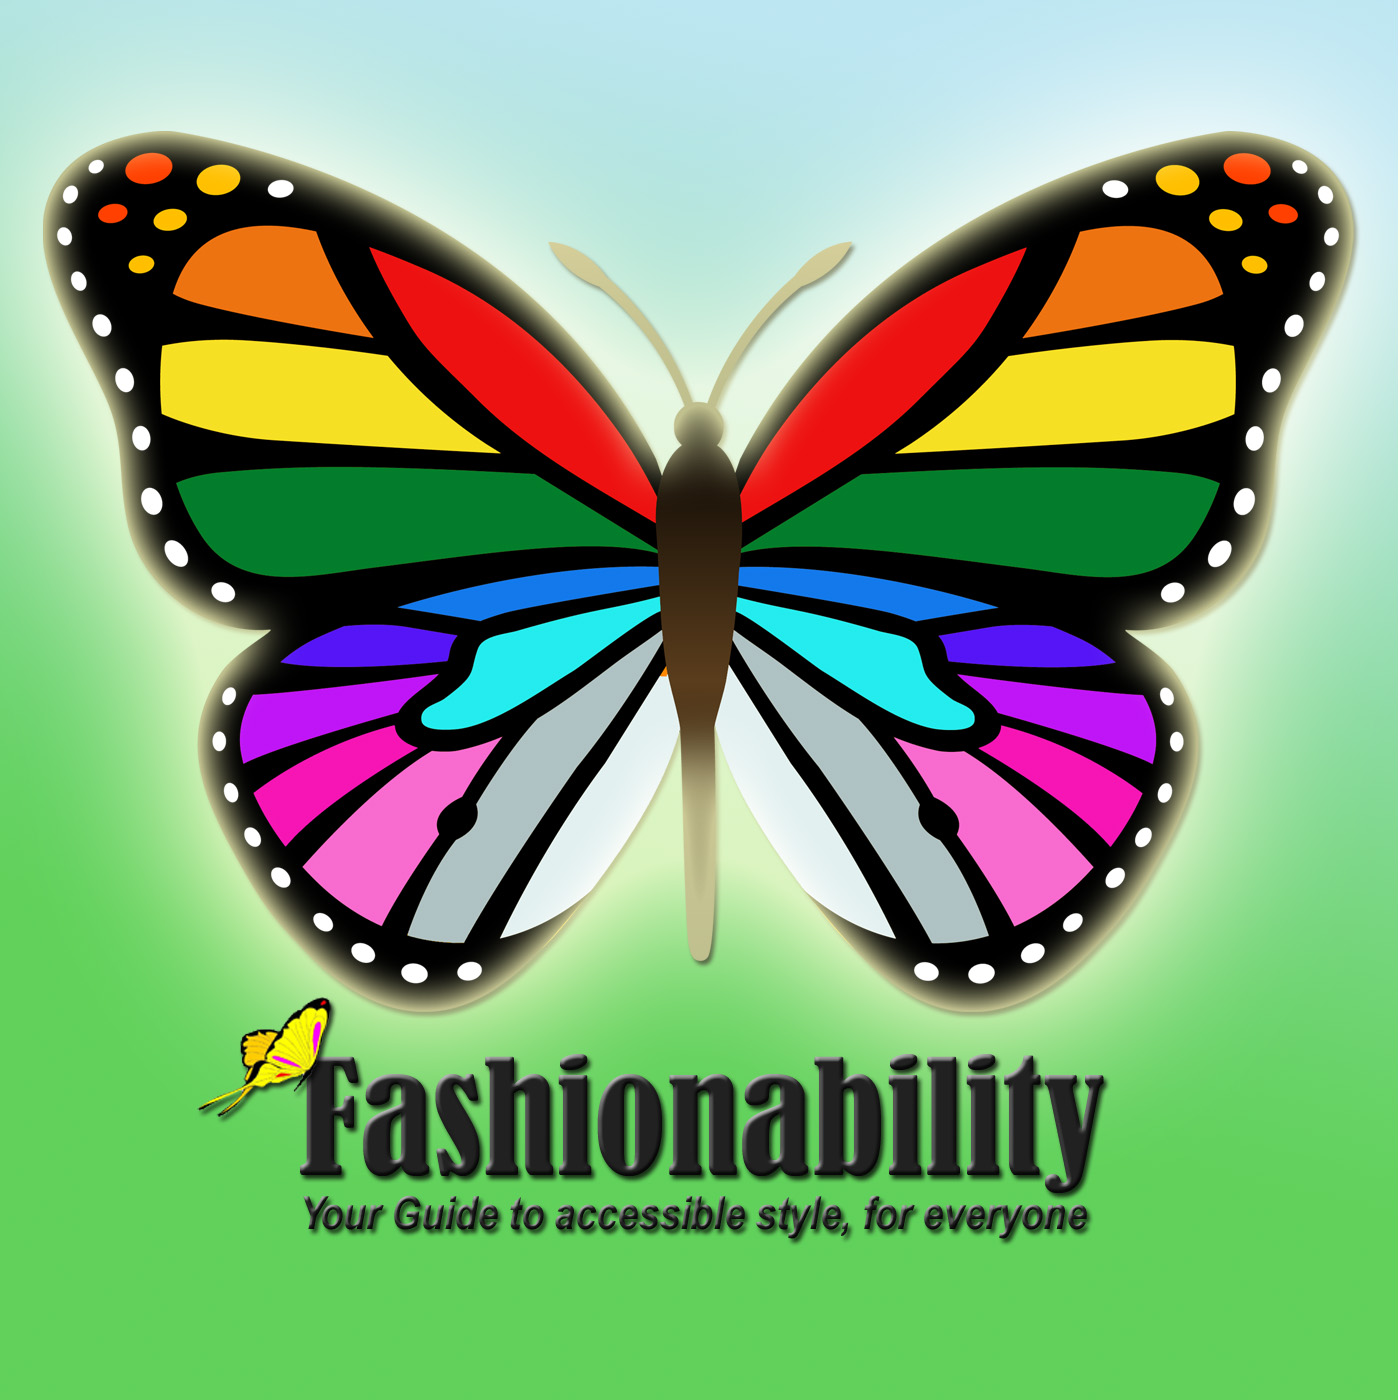 The Fashionability Channel